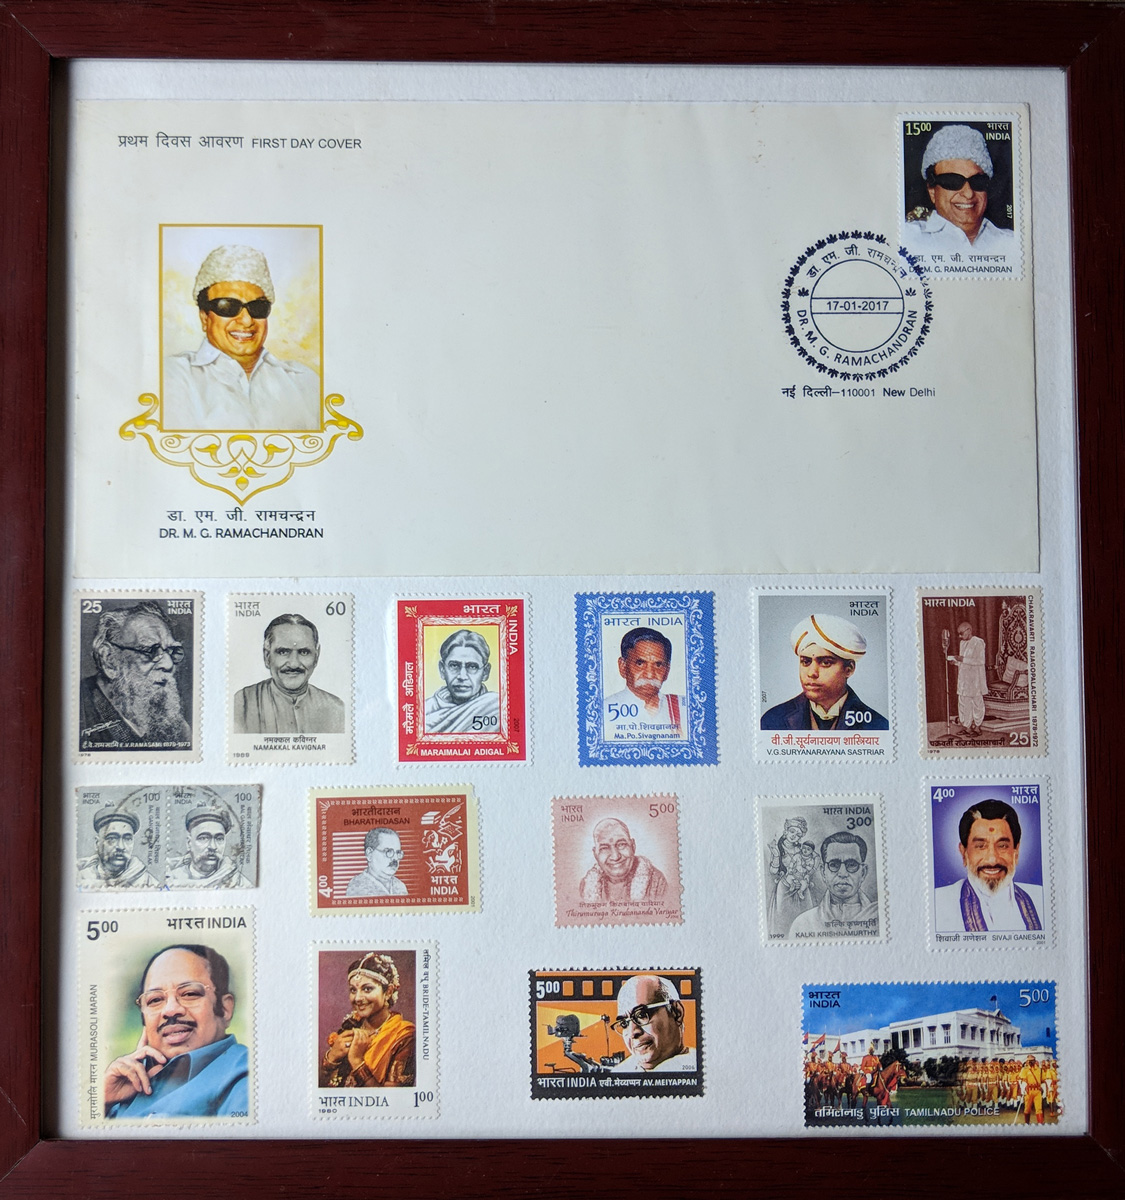 Stamps and first day covers on the theme of Tamil Poets and Tamil Leaders